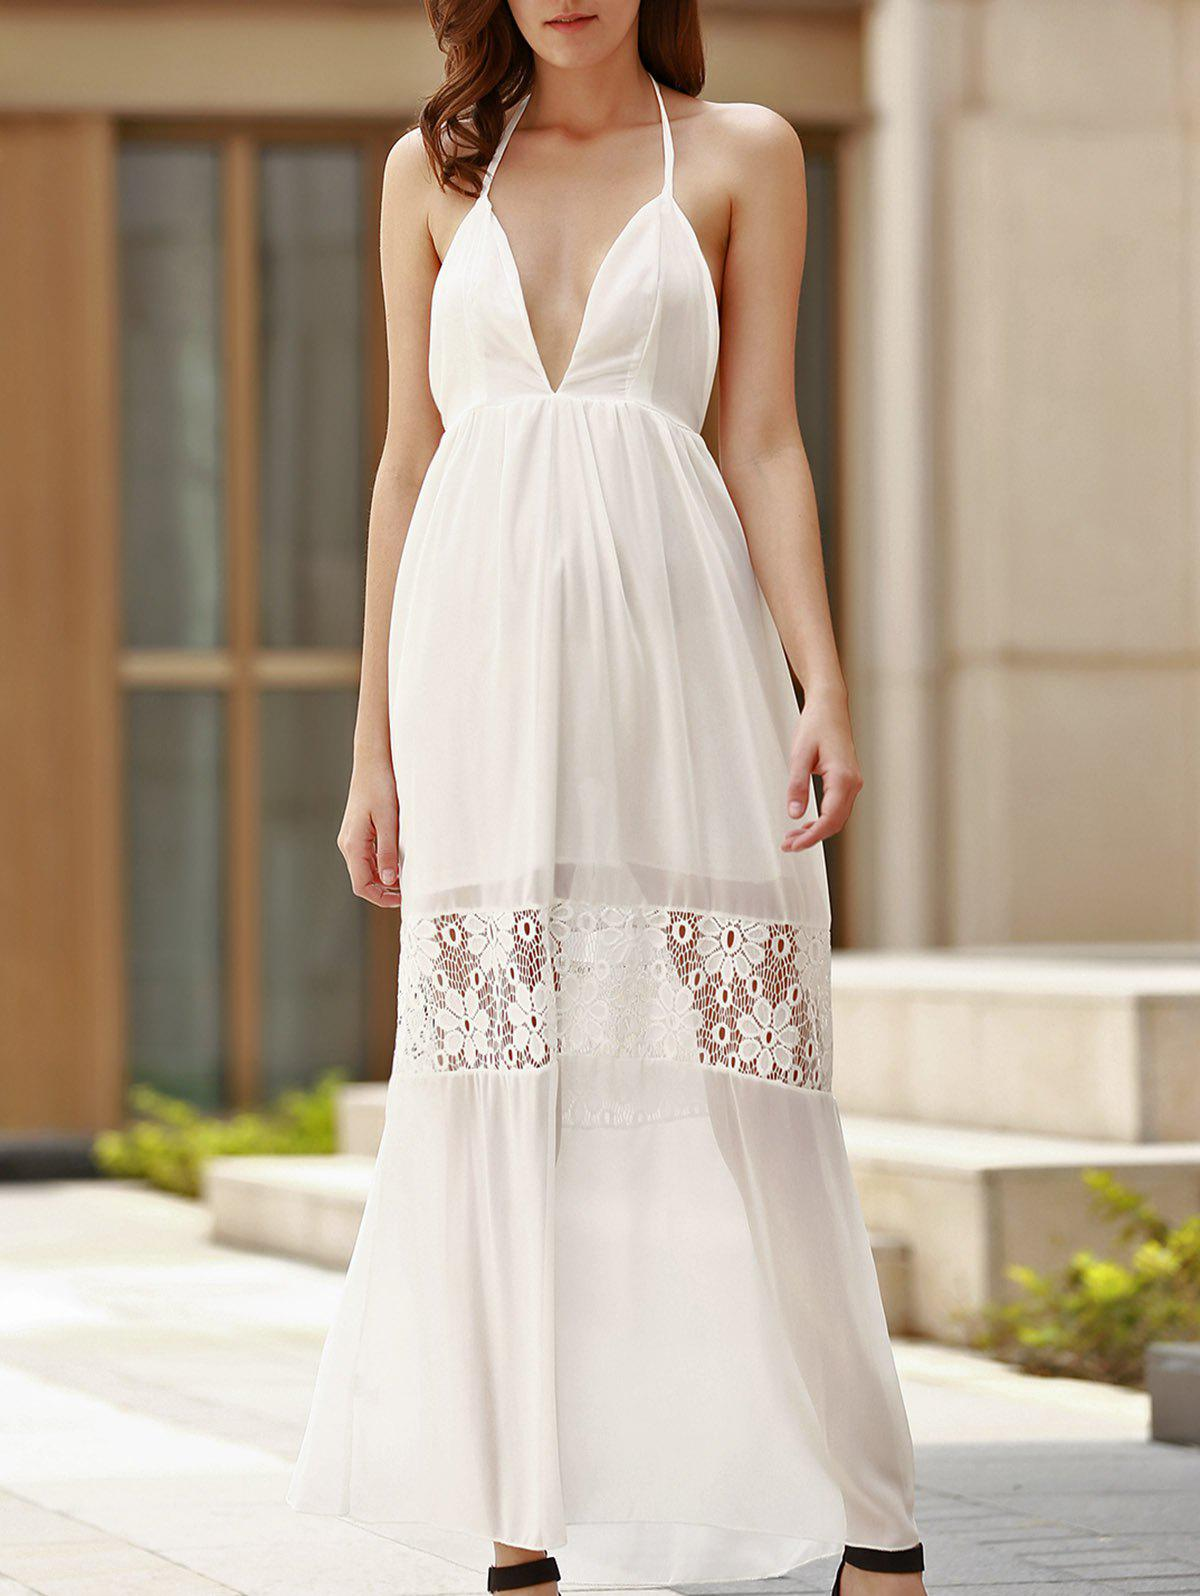 Sexy Women's Halter Plunging Neck Backless Maxi Dress - WHITE M